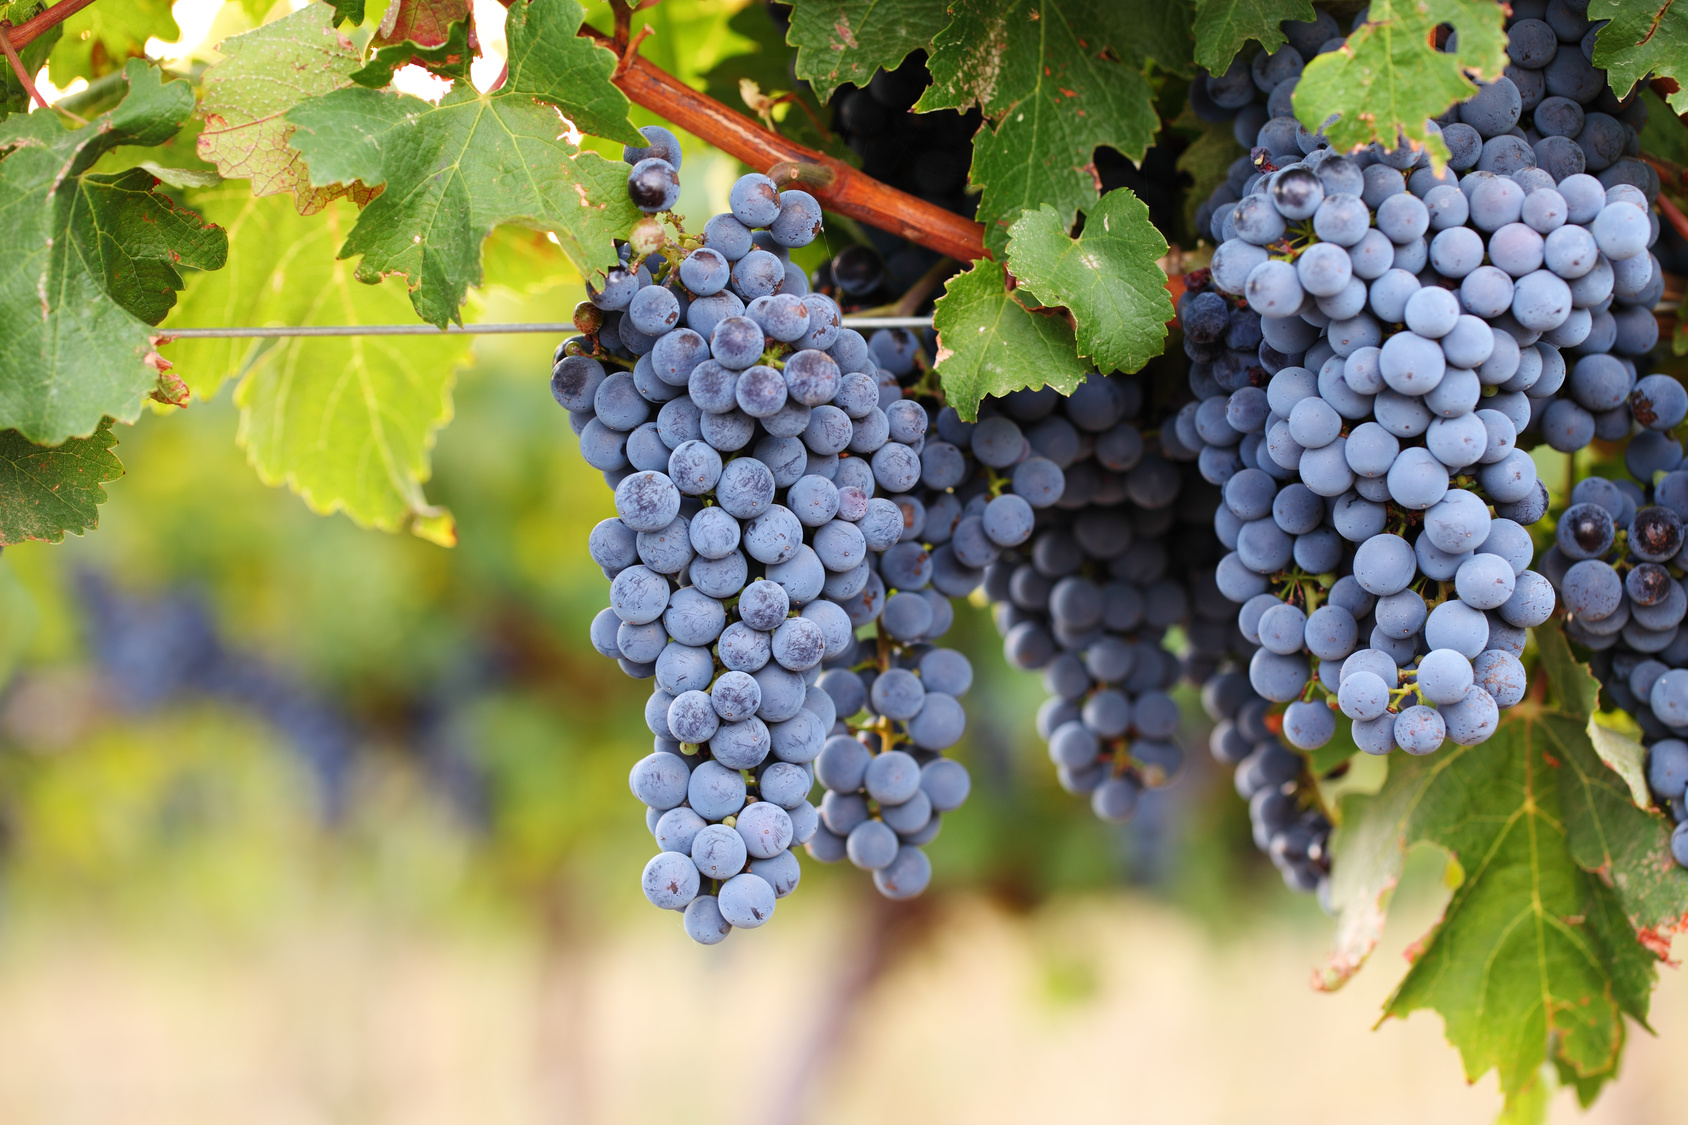 symbolic image of grapes